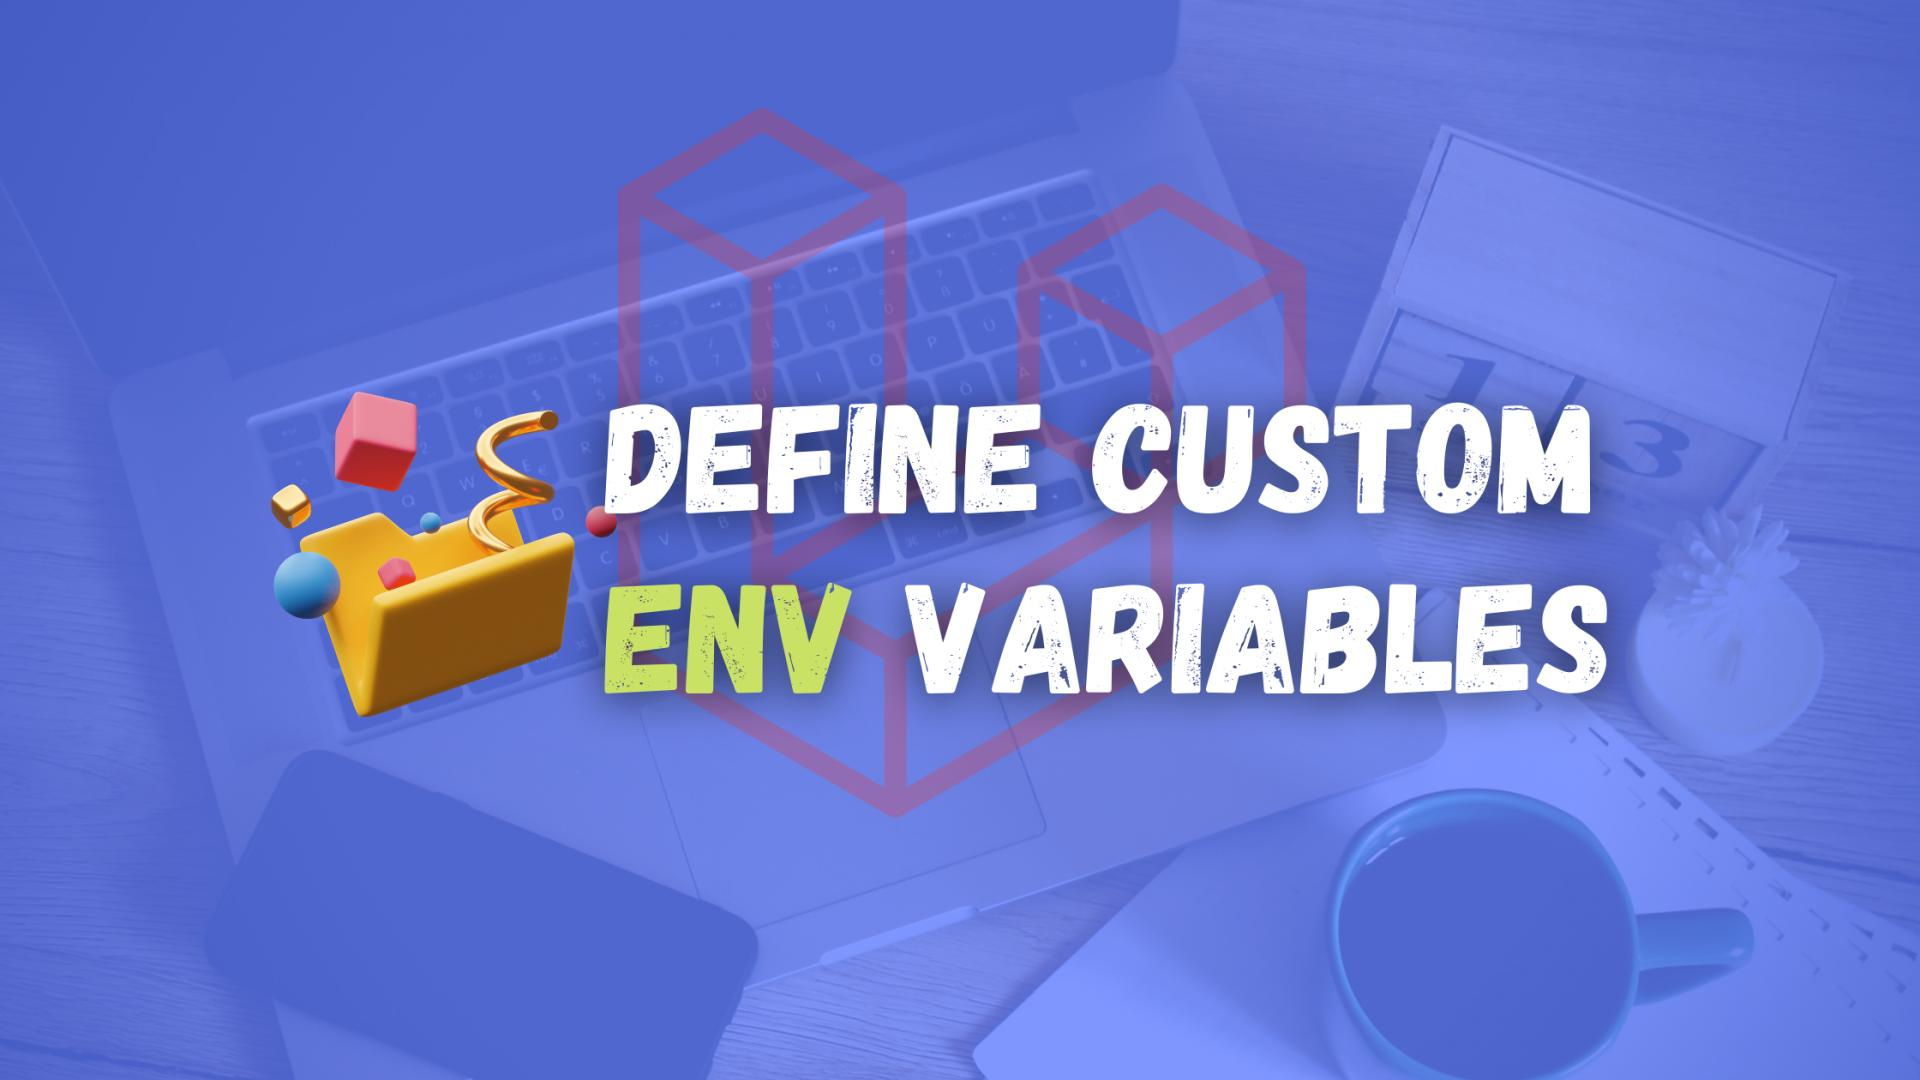 How to Define Custom ENV Variables in Laravel?